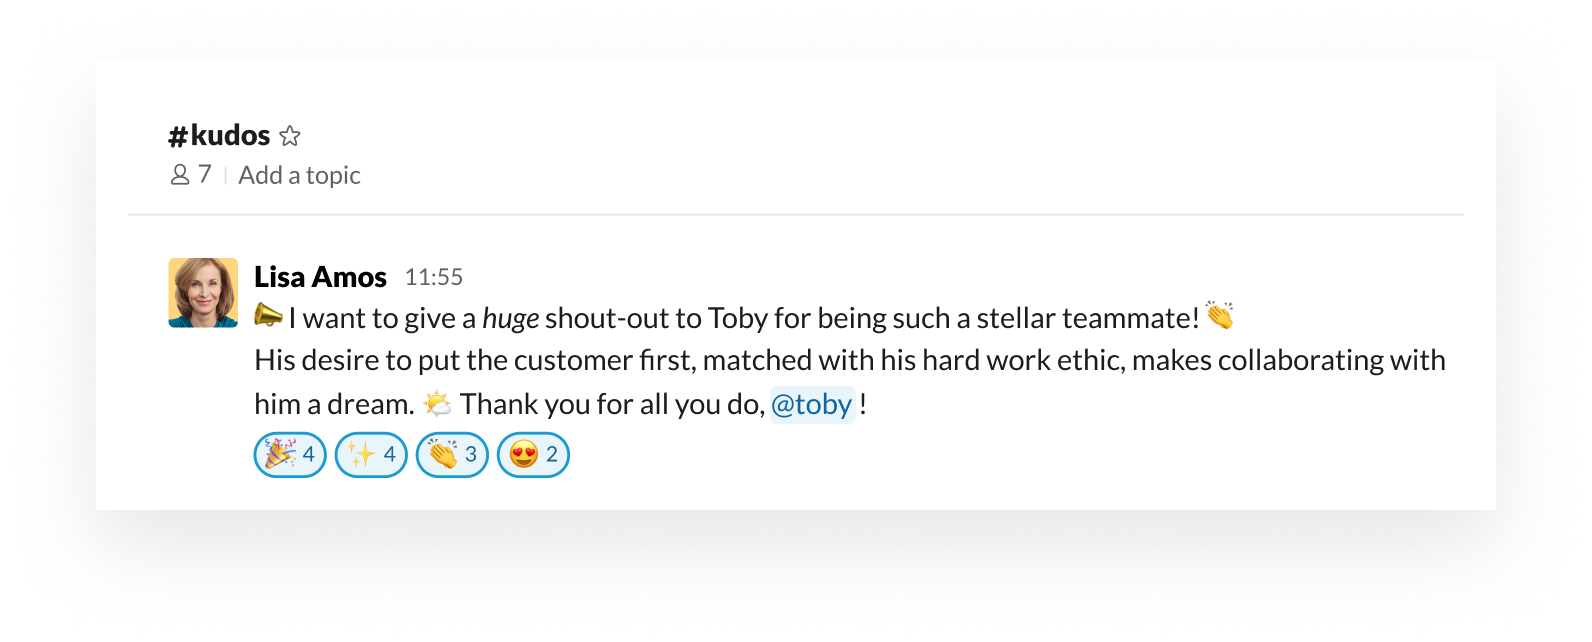 Example of how to support and celebrate your team within Slack with emoji